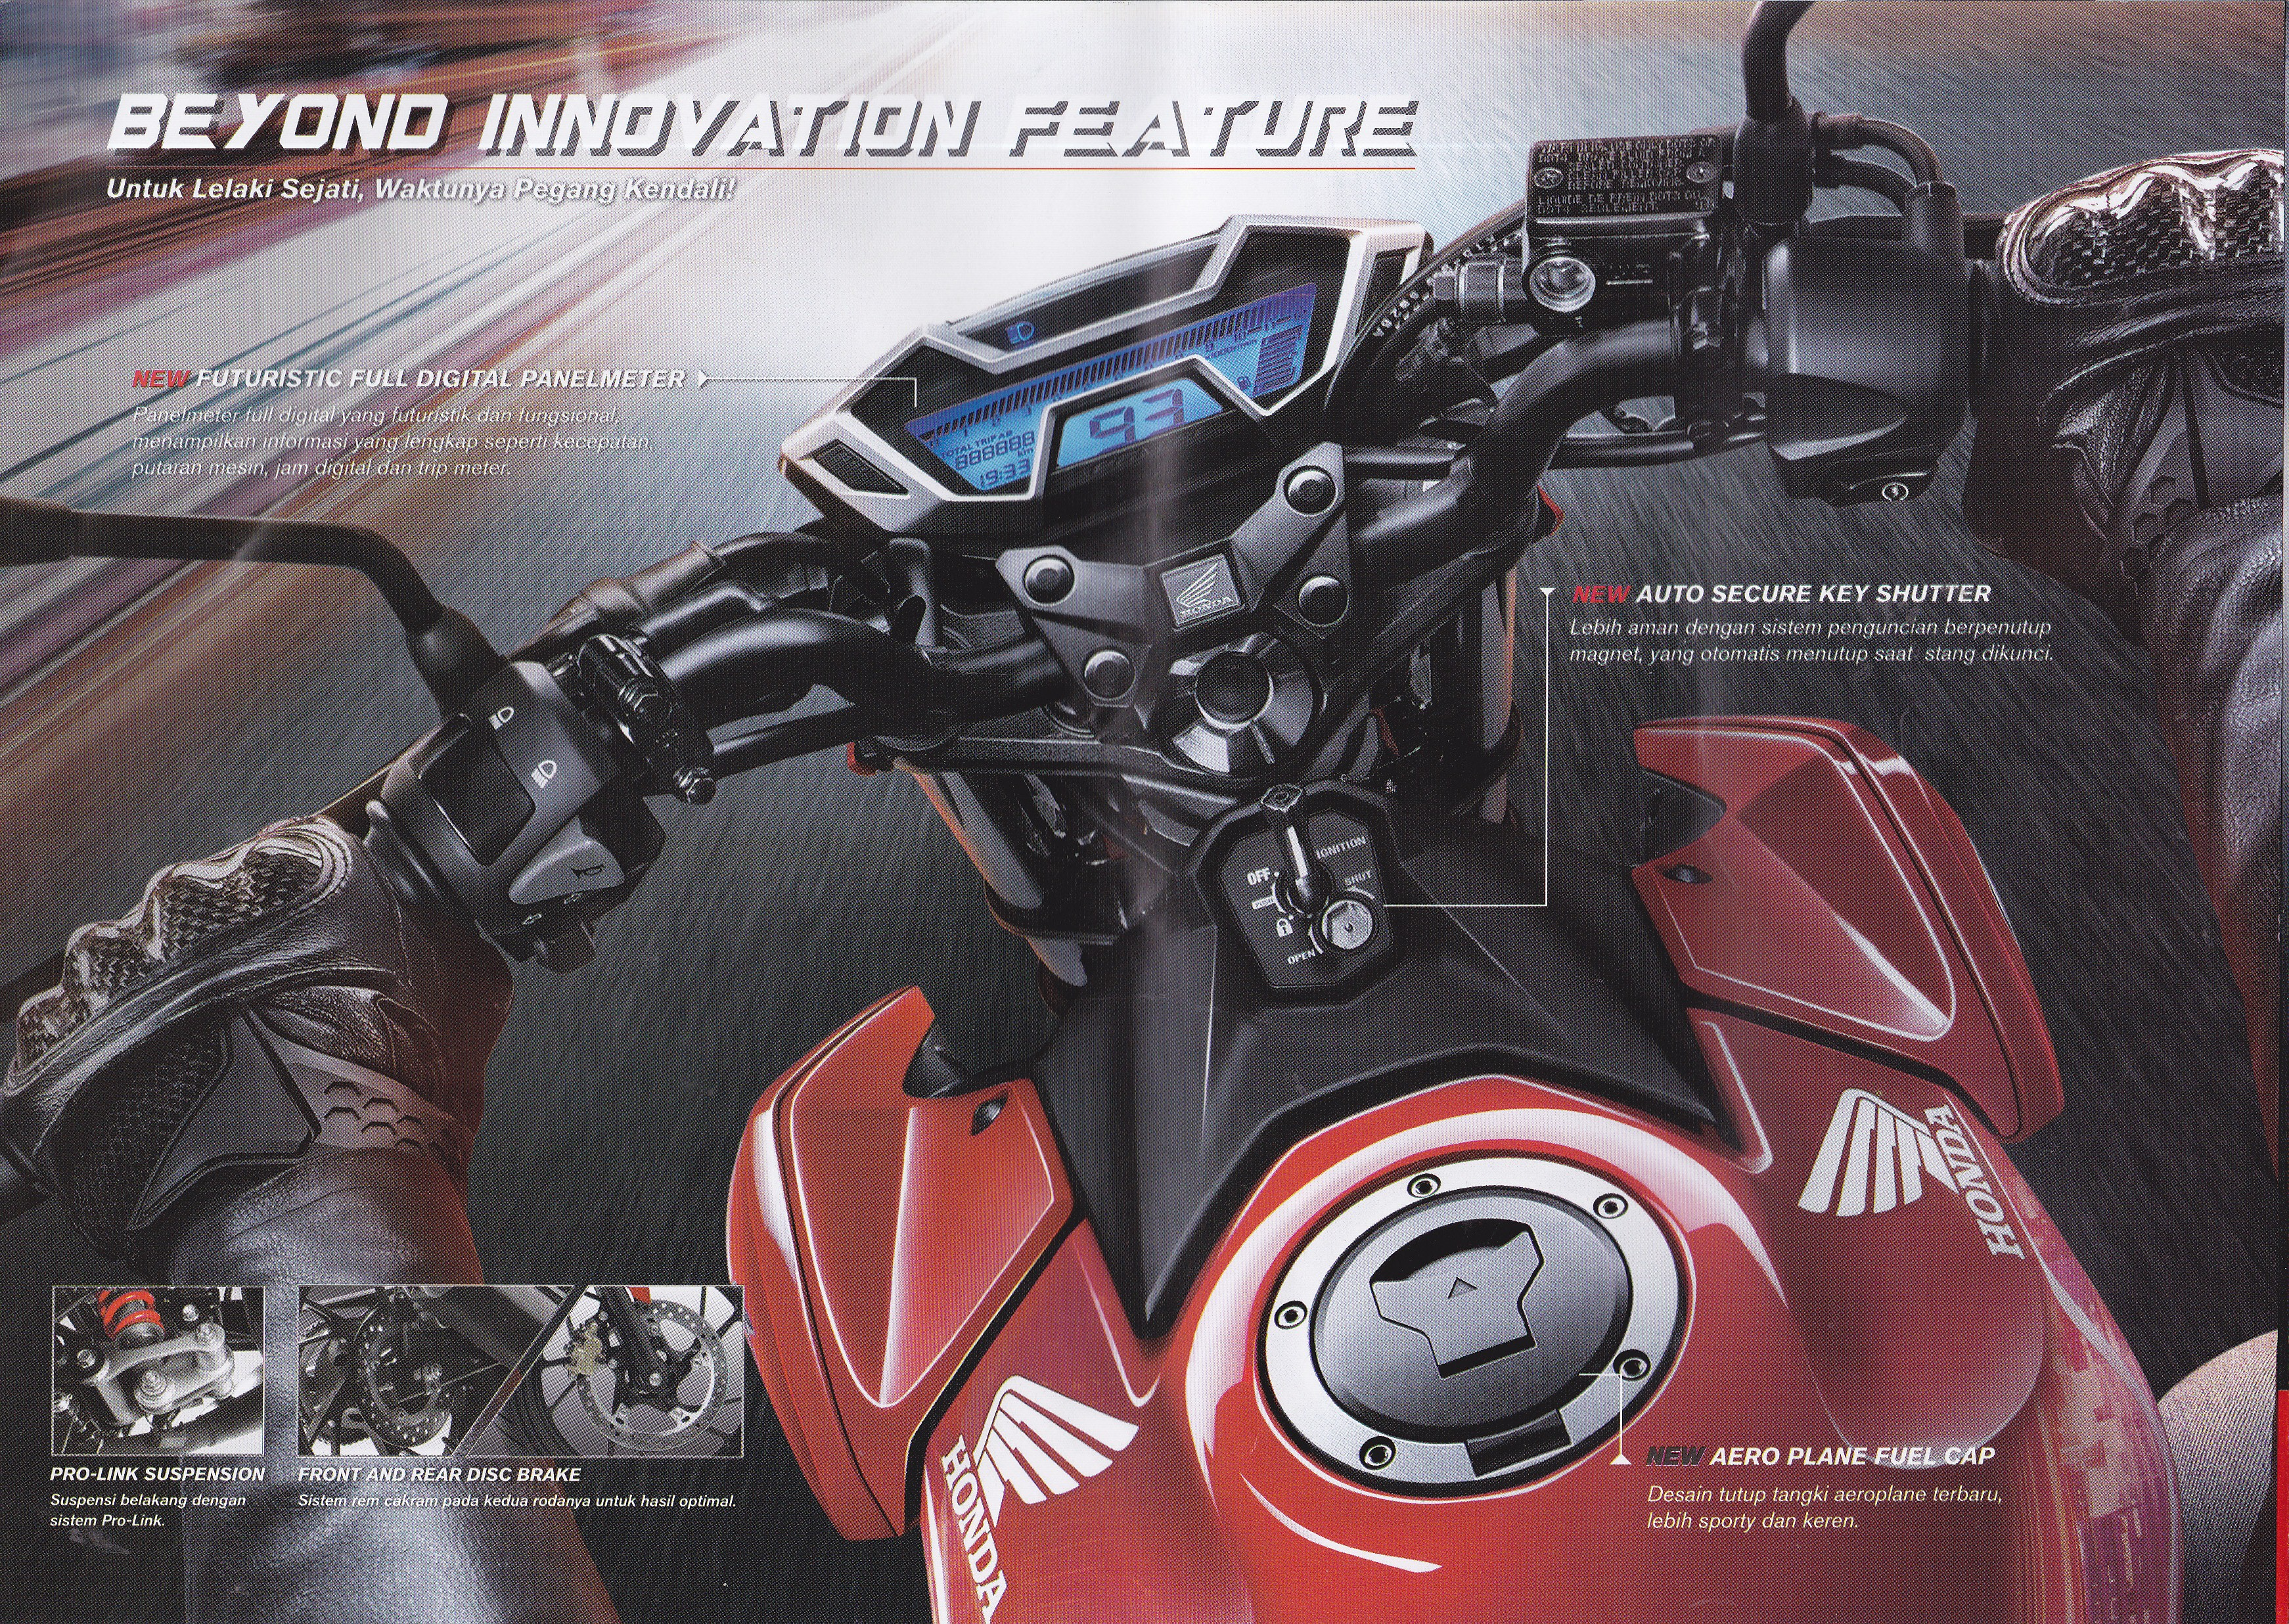 Sepeda Motor Page 113 New Vario 110 Esp Cbs Iss Glam Red Kendal Cb150r4